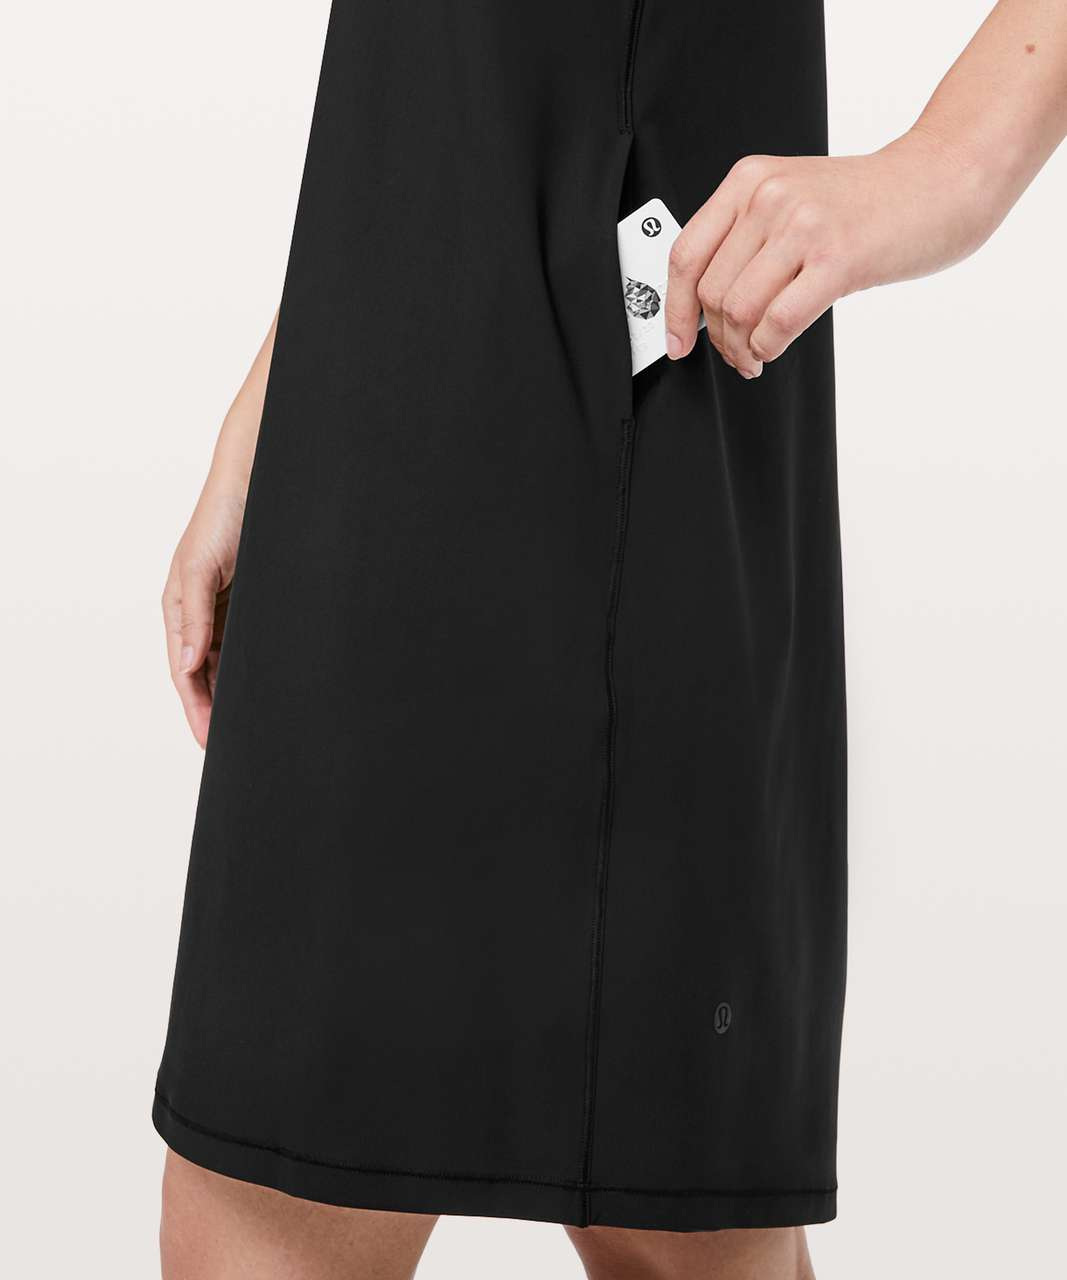 Lululemon Early Morning Dress - Black